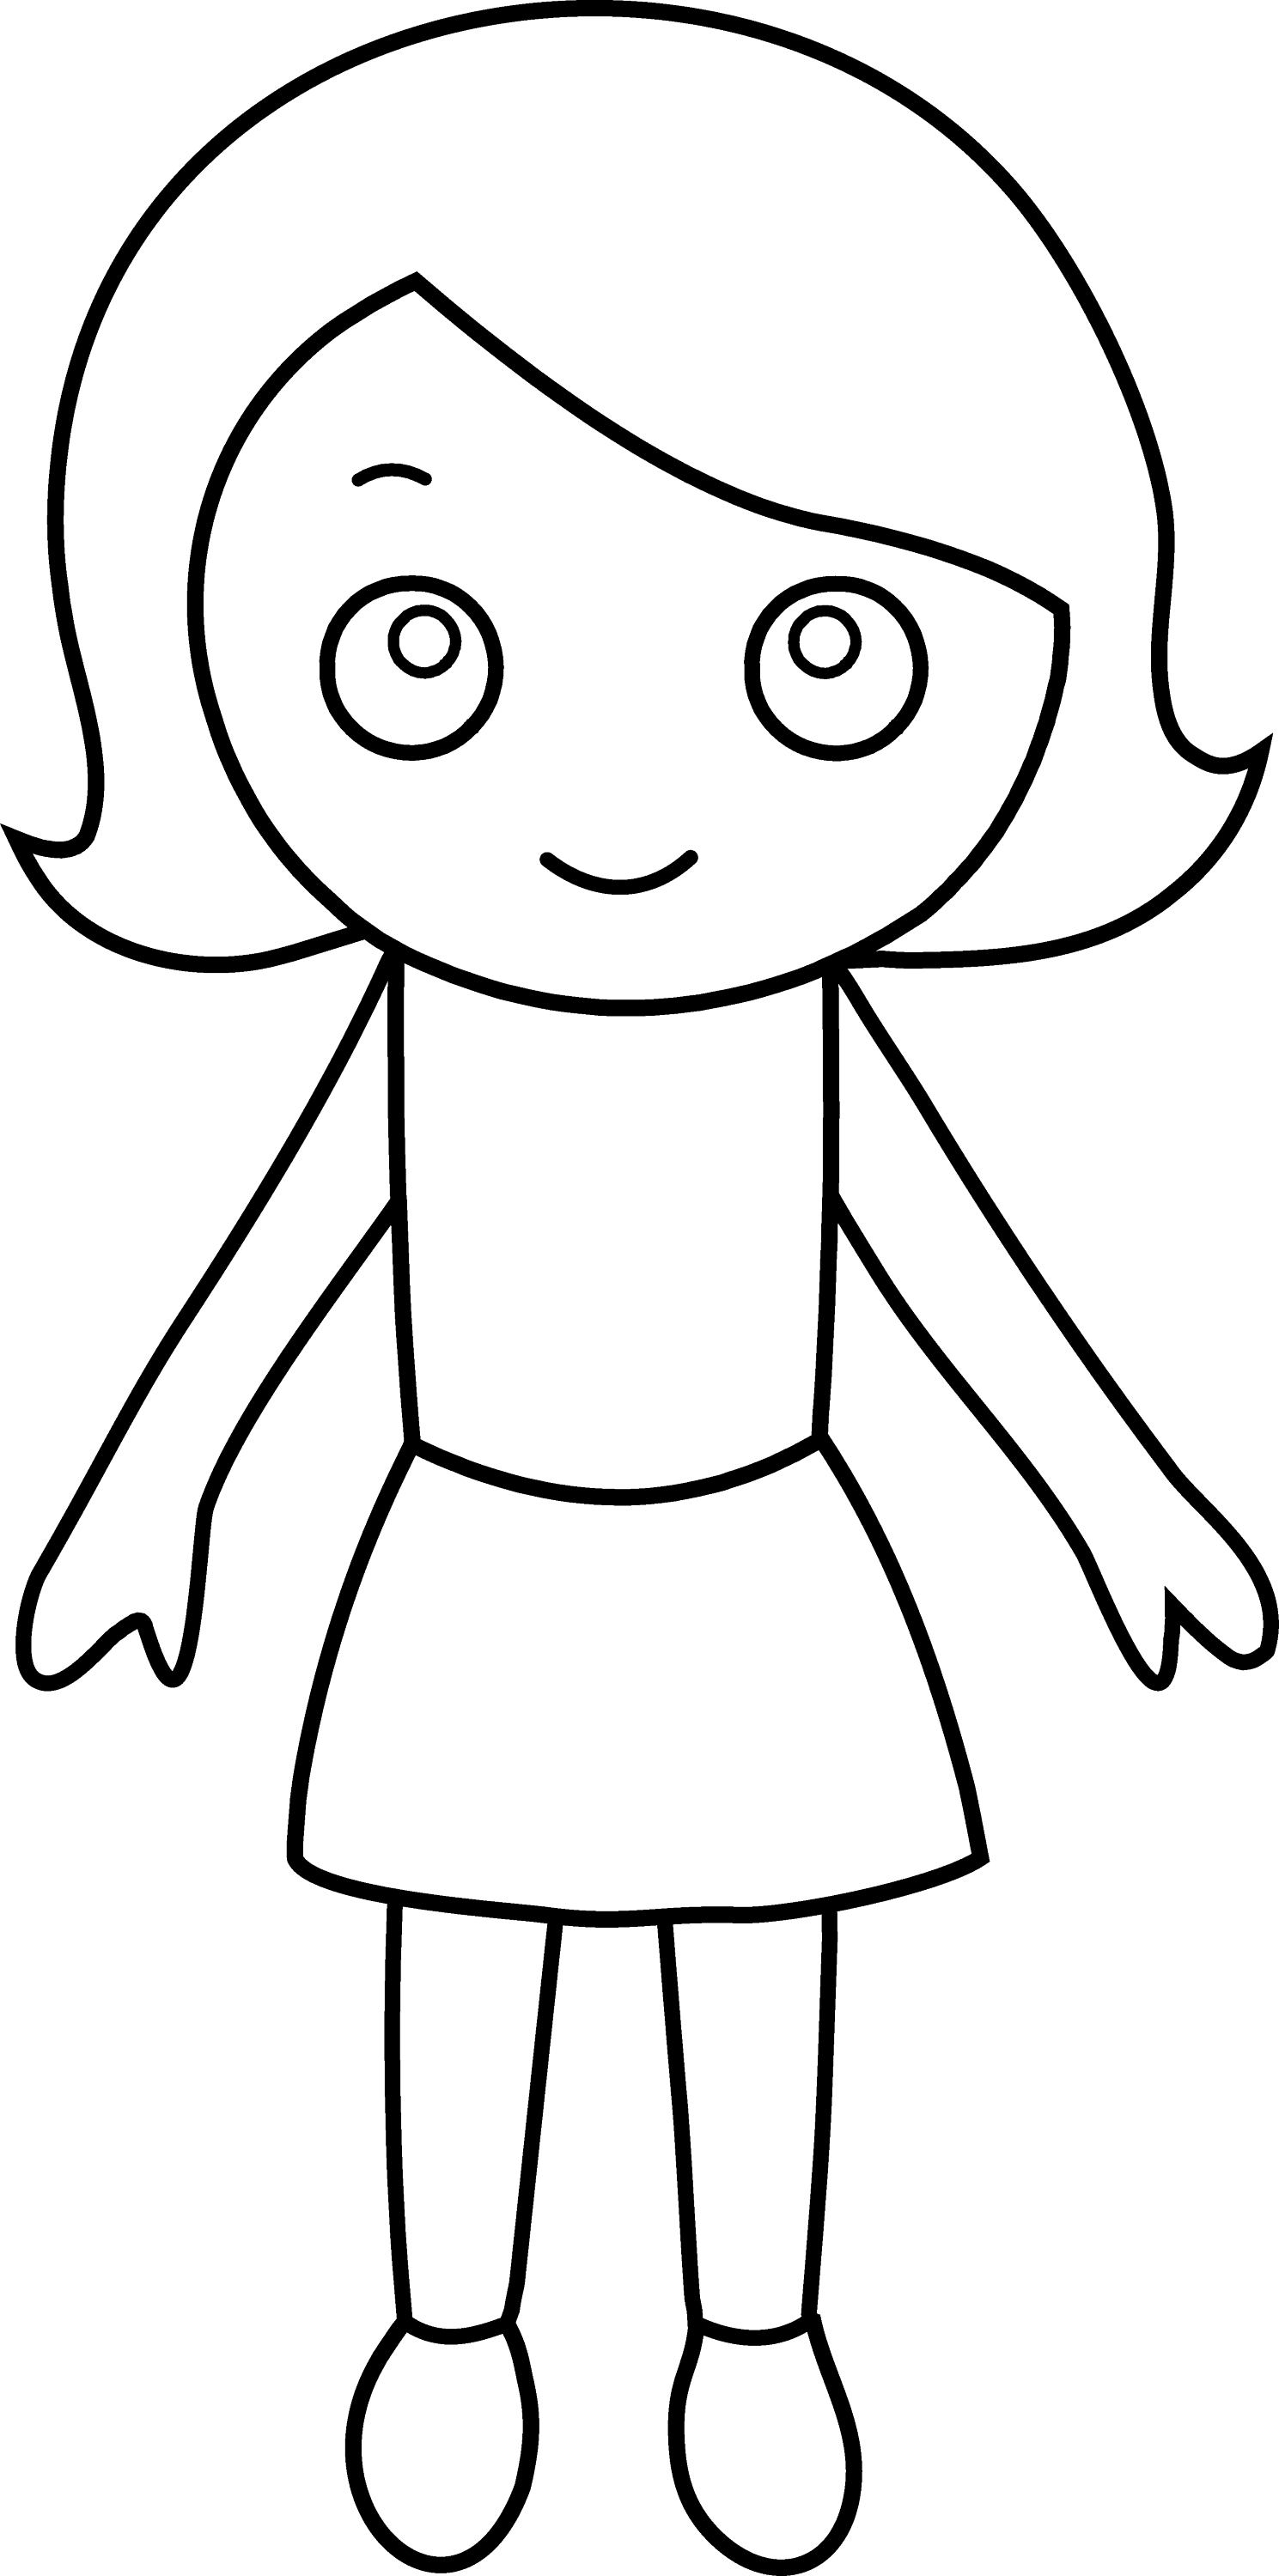 coloring pages of little girls little girl coloring pages getcoloringpagescom girls coloring pages little of